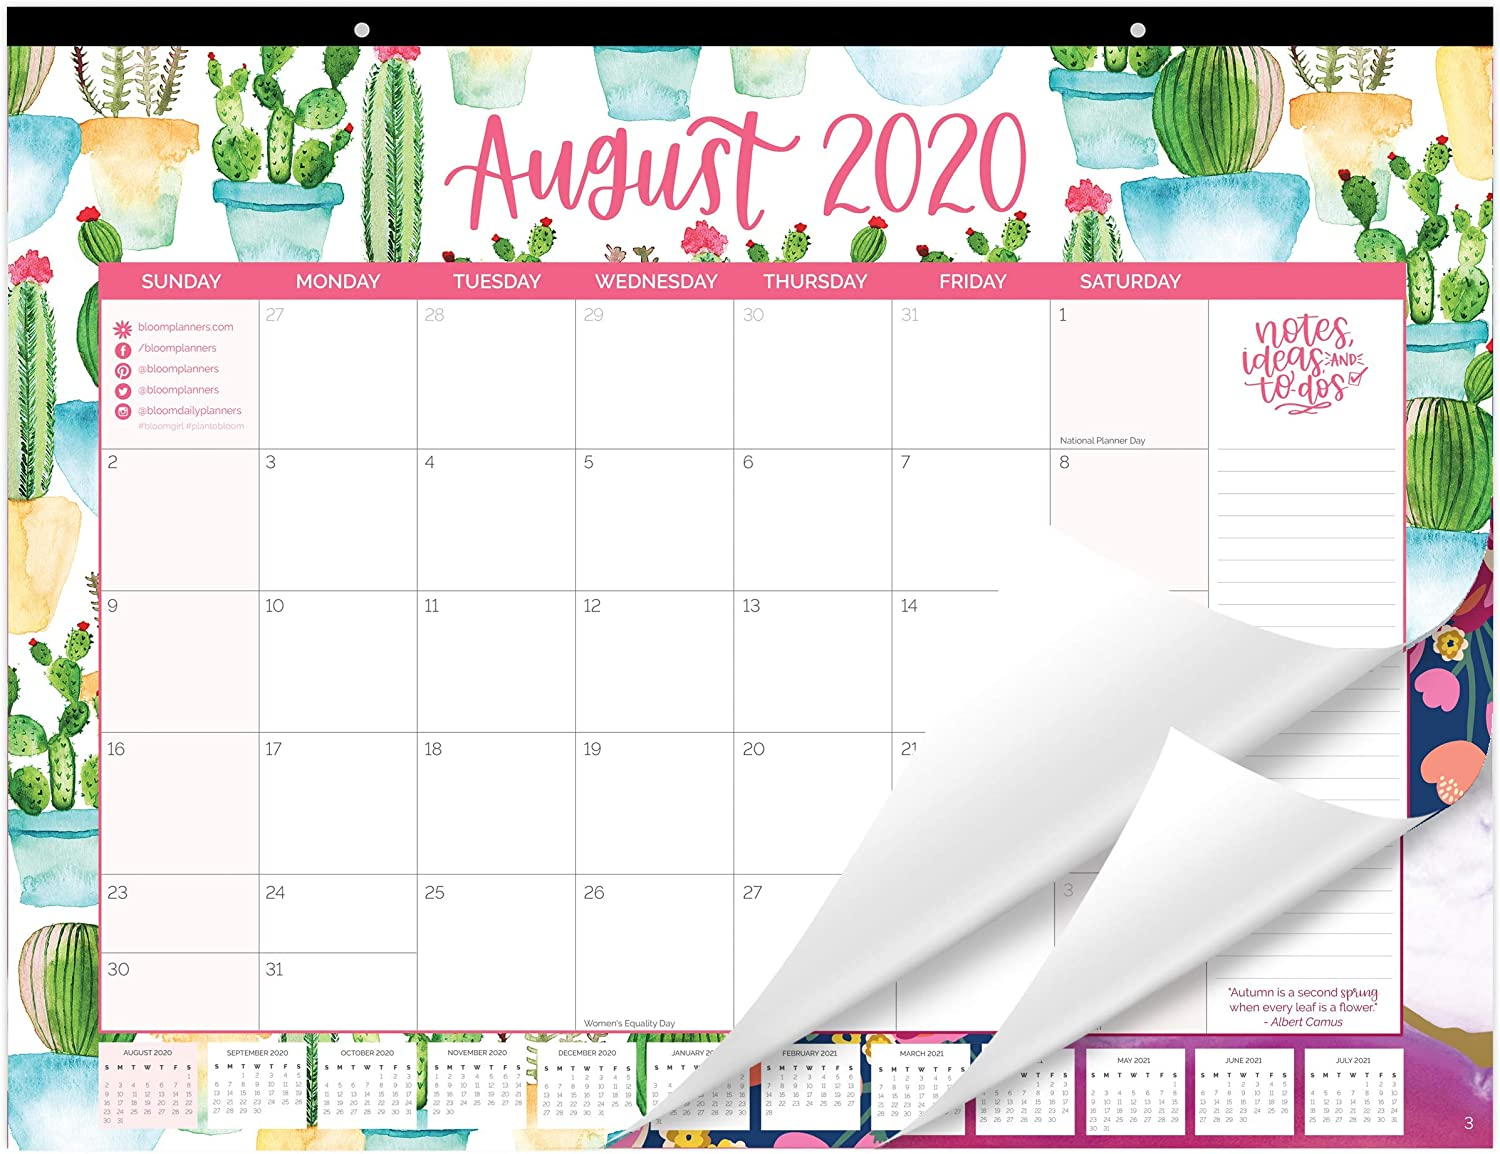 "bloom daily planners 2020-2021 Academic Year Desk/Wall Monthly Calendar Pad (August 2020 - July 2021) - Large 21"" x 16"" Hanging or Desktop Blotter - Seasonal Designs"